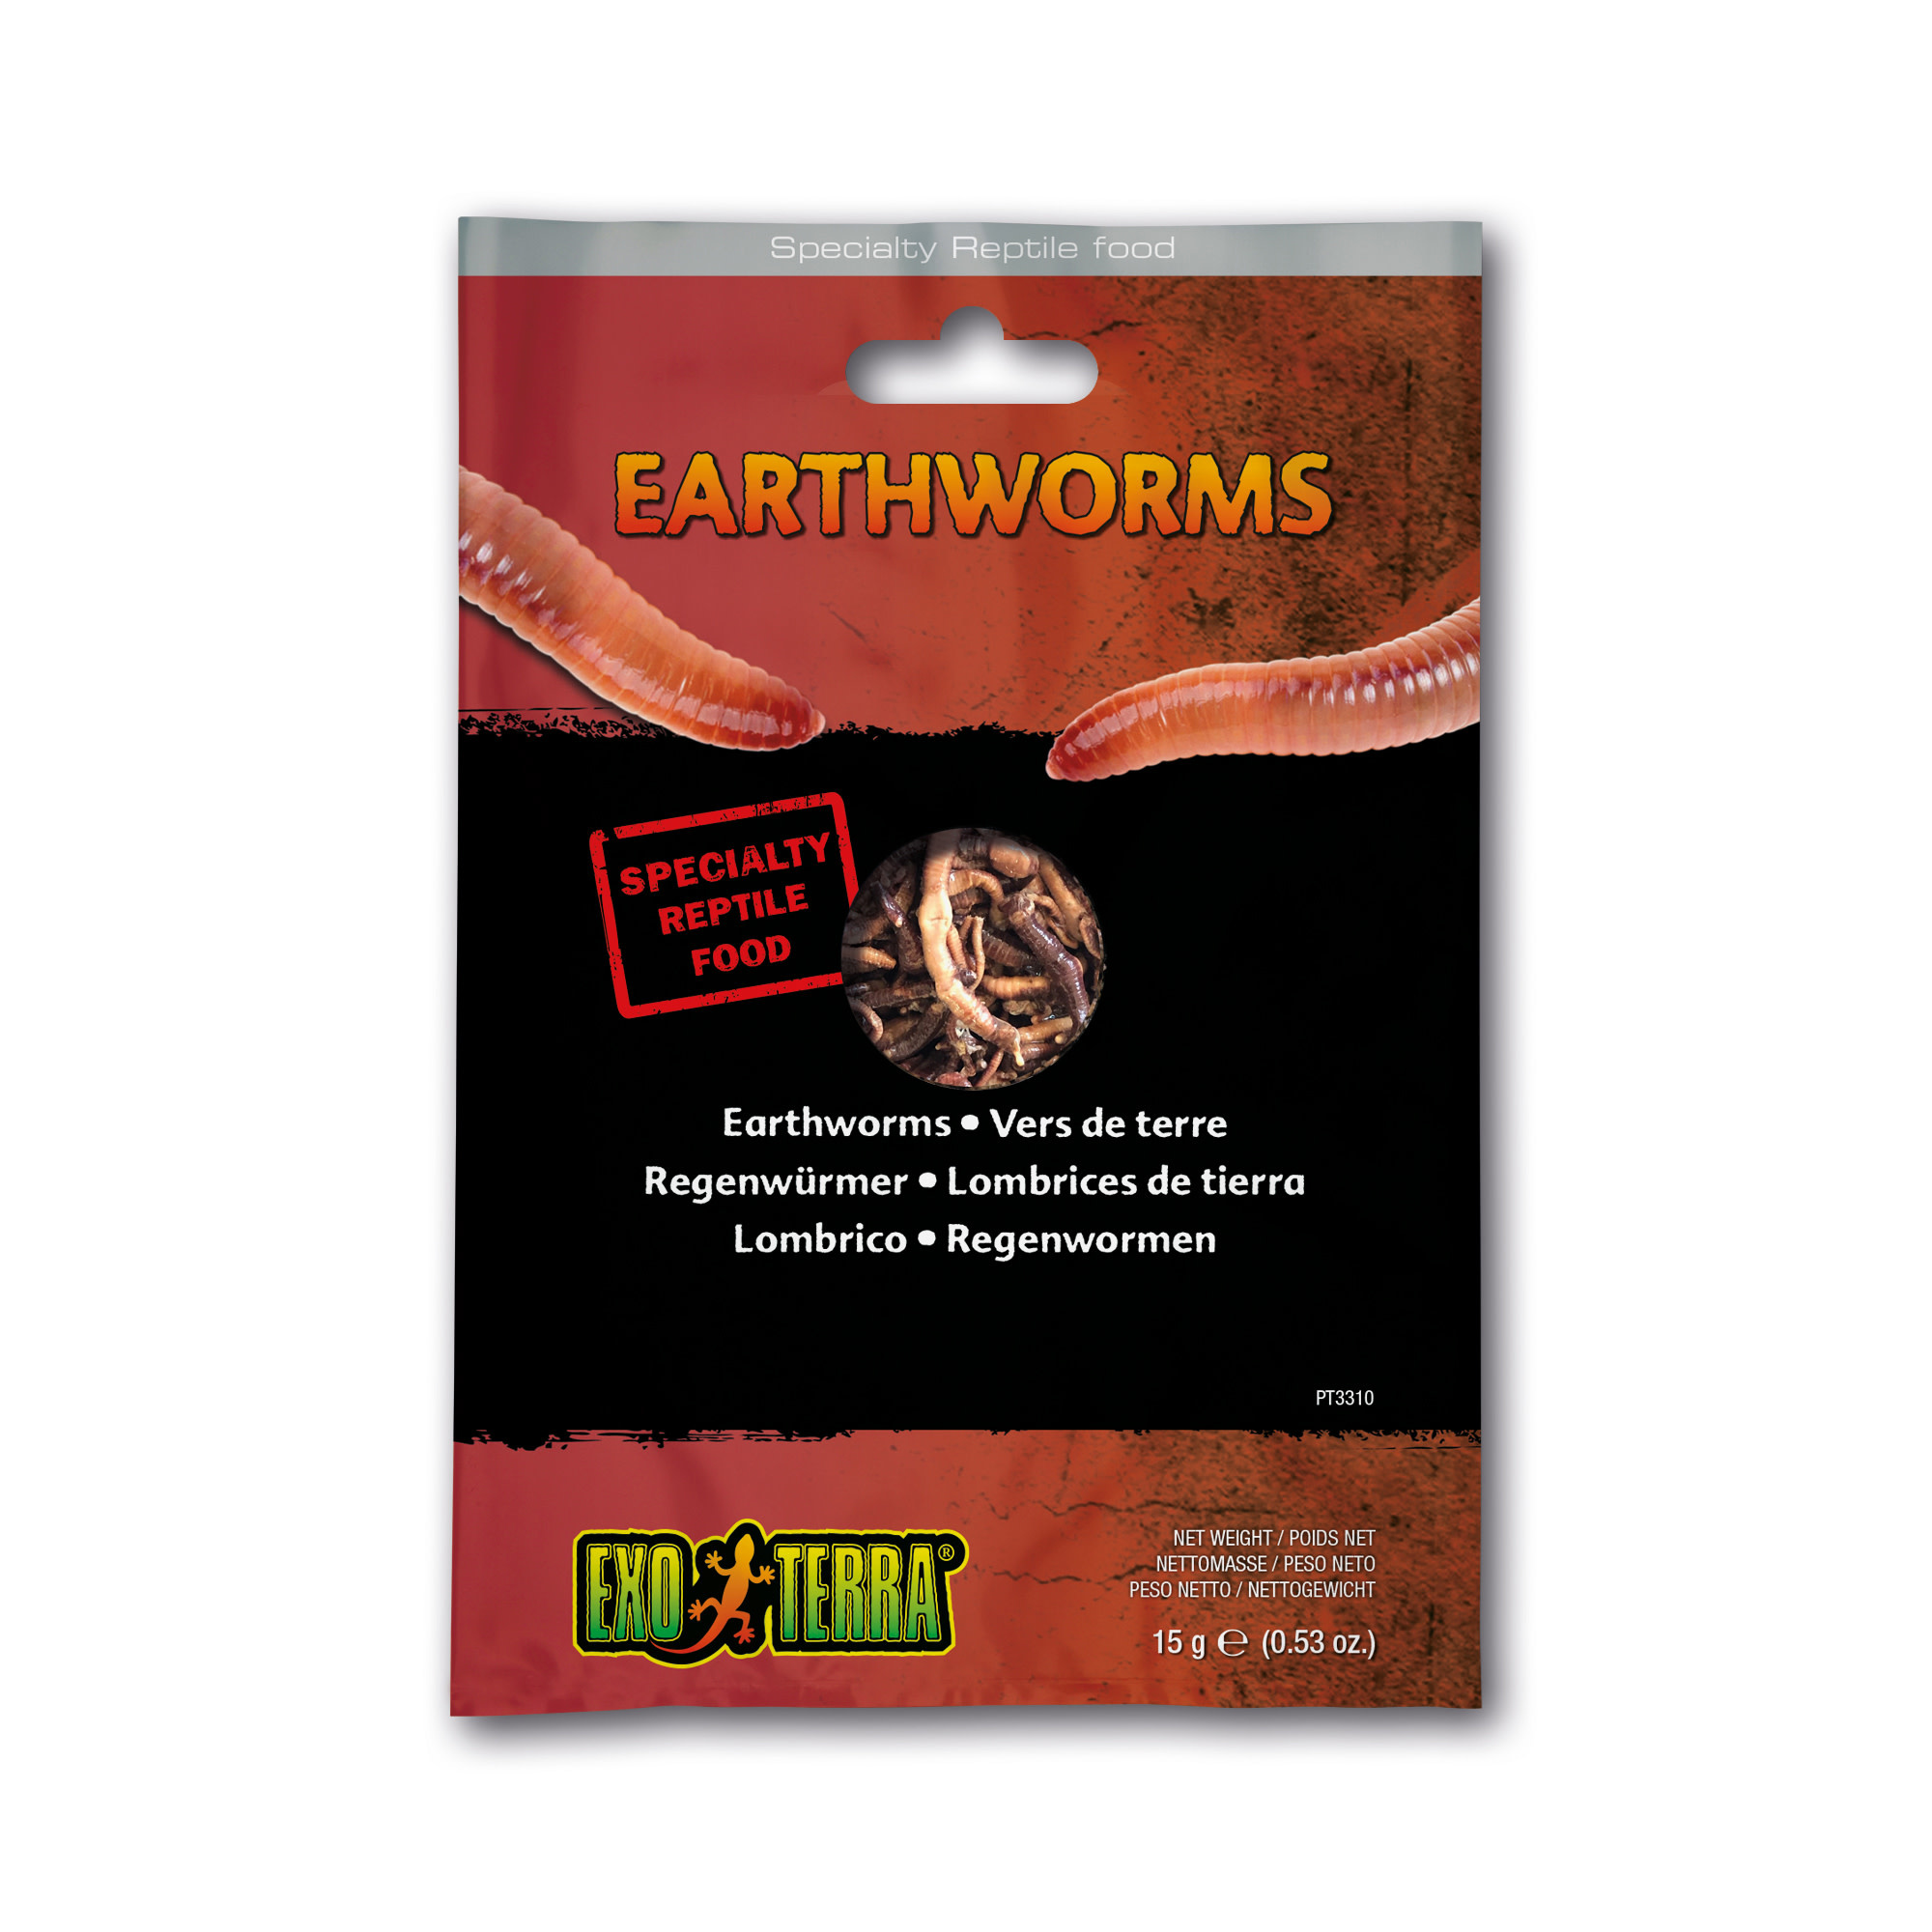 EX Reptile Food, Earthworms ,15g-1